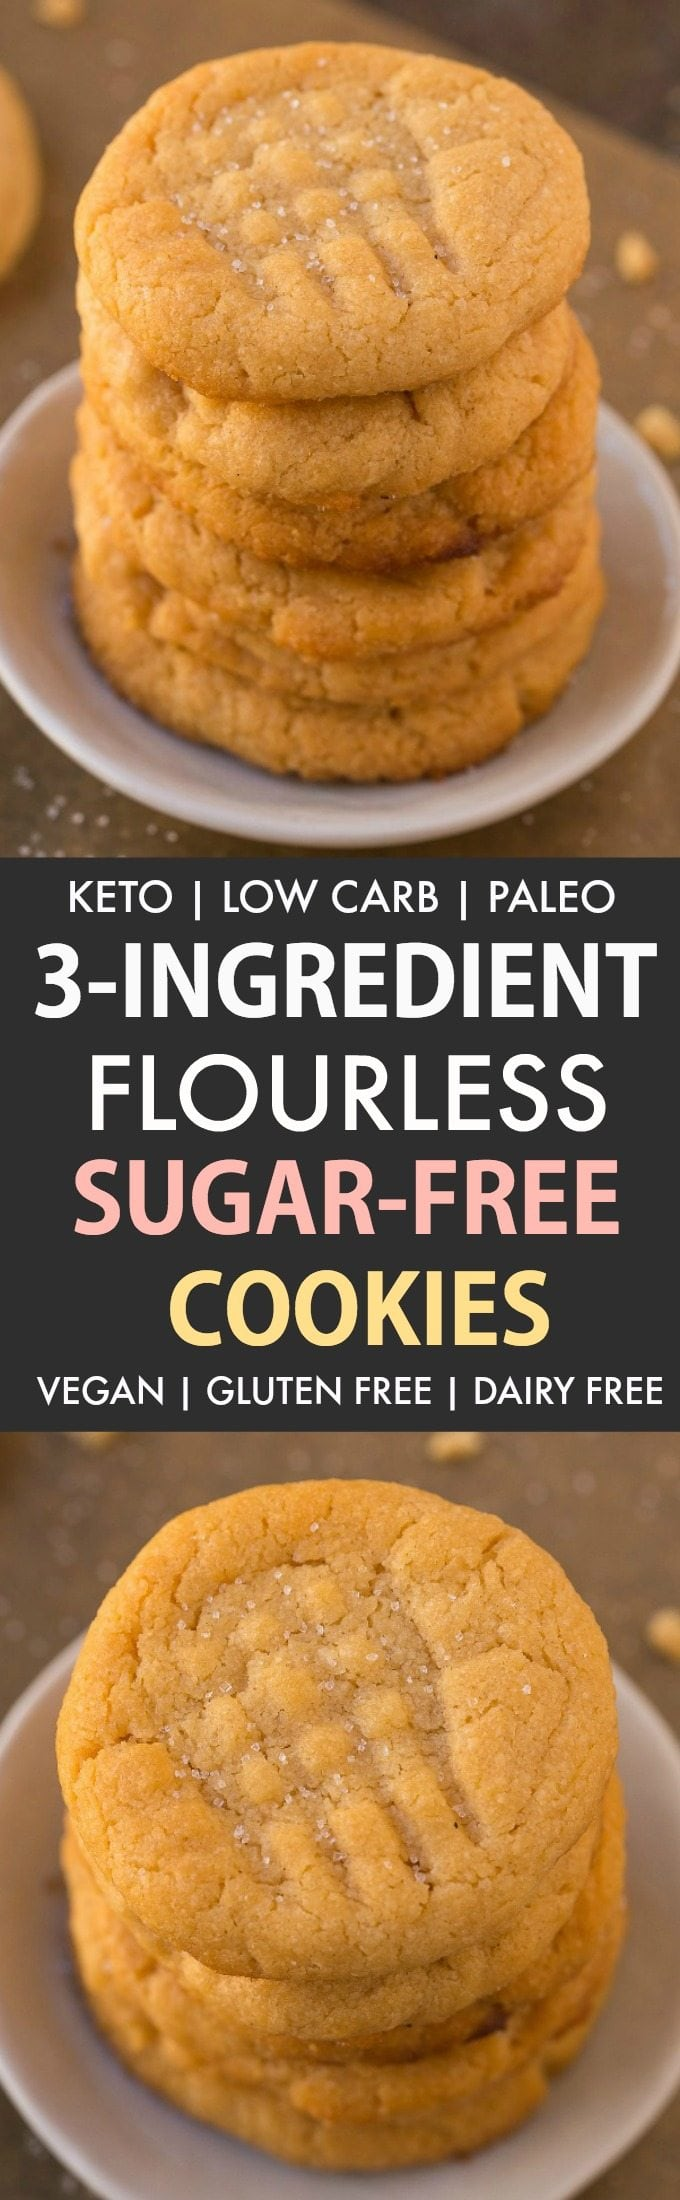 3-Ingredient Low Carb Sugar Free Cookies (Keto, Flourless, Paleo, Vegan)- The classic peanut butter cookie gets a healthy and sugar-free makeover- Chewy, soft and crispy in one! #cookies #ketodessert #ketobaking #sugarfreerecipes #lowcarbrecipes #ketorecipes   Recipe on thebigmansworld.com